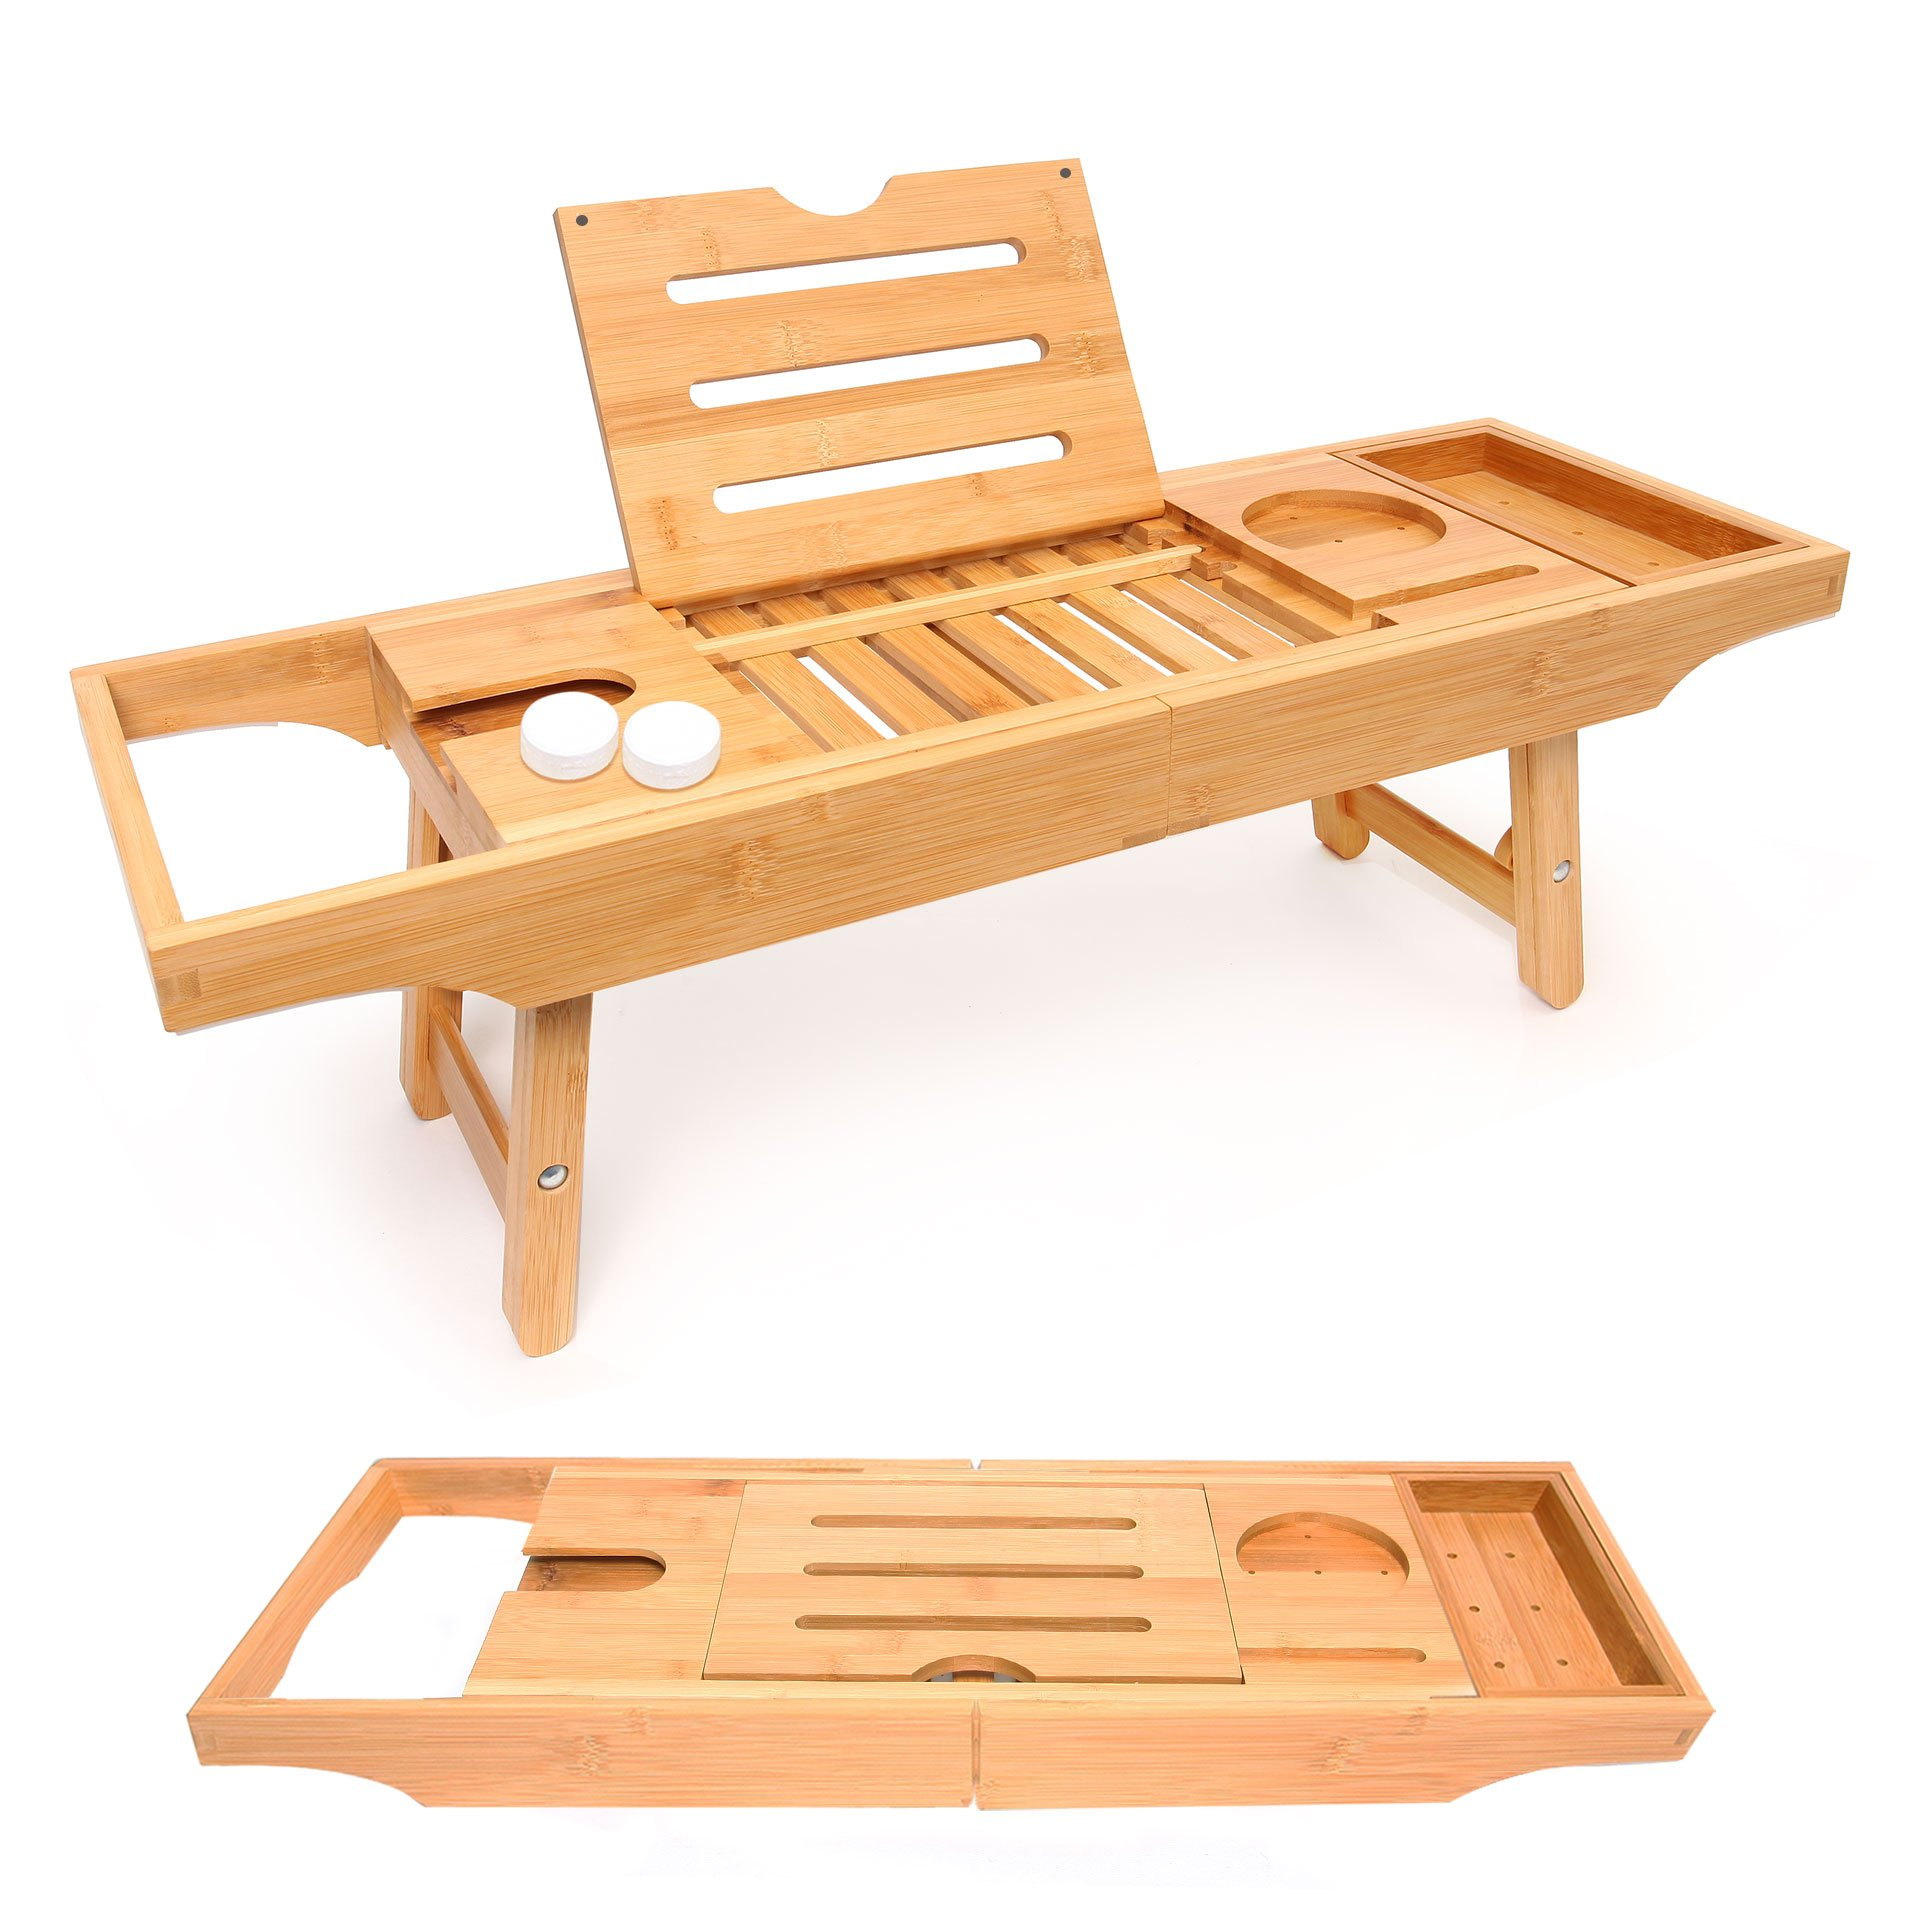 Bathtub Caddy and Bed Tray Combo - Premium Bamboo Wood with 2 Lavender Bath Bombs - Folding Legs/Fully Adjustable - Mold Resistant - Phone Tablet and Wine Holders for The Finest Home Spa Experience